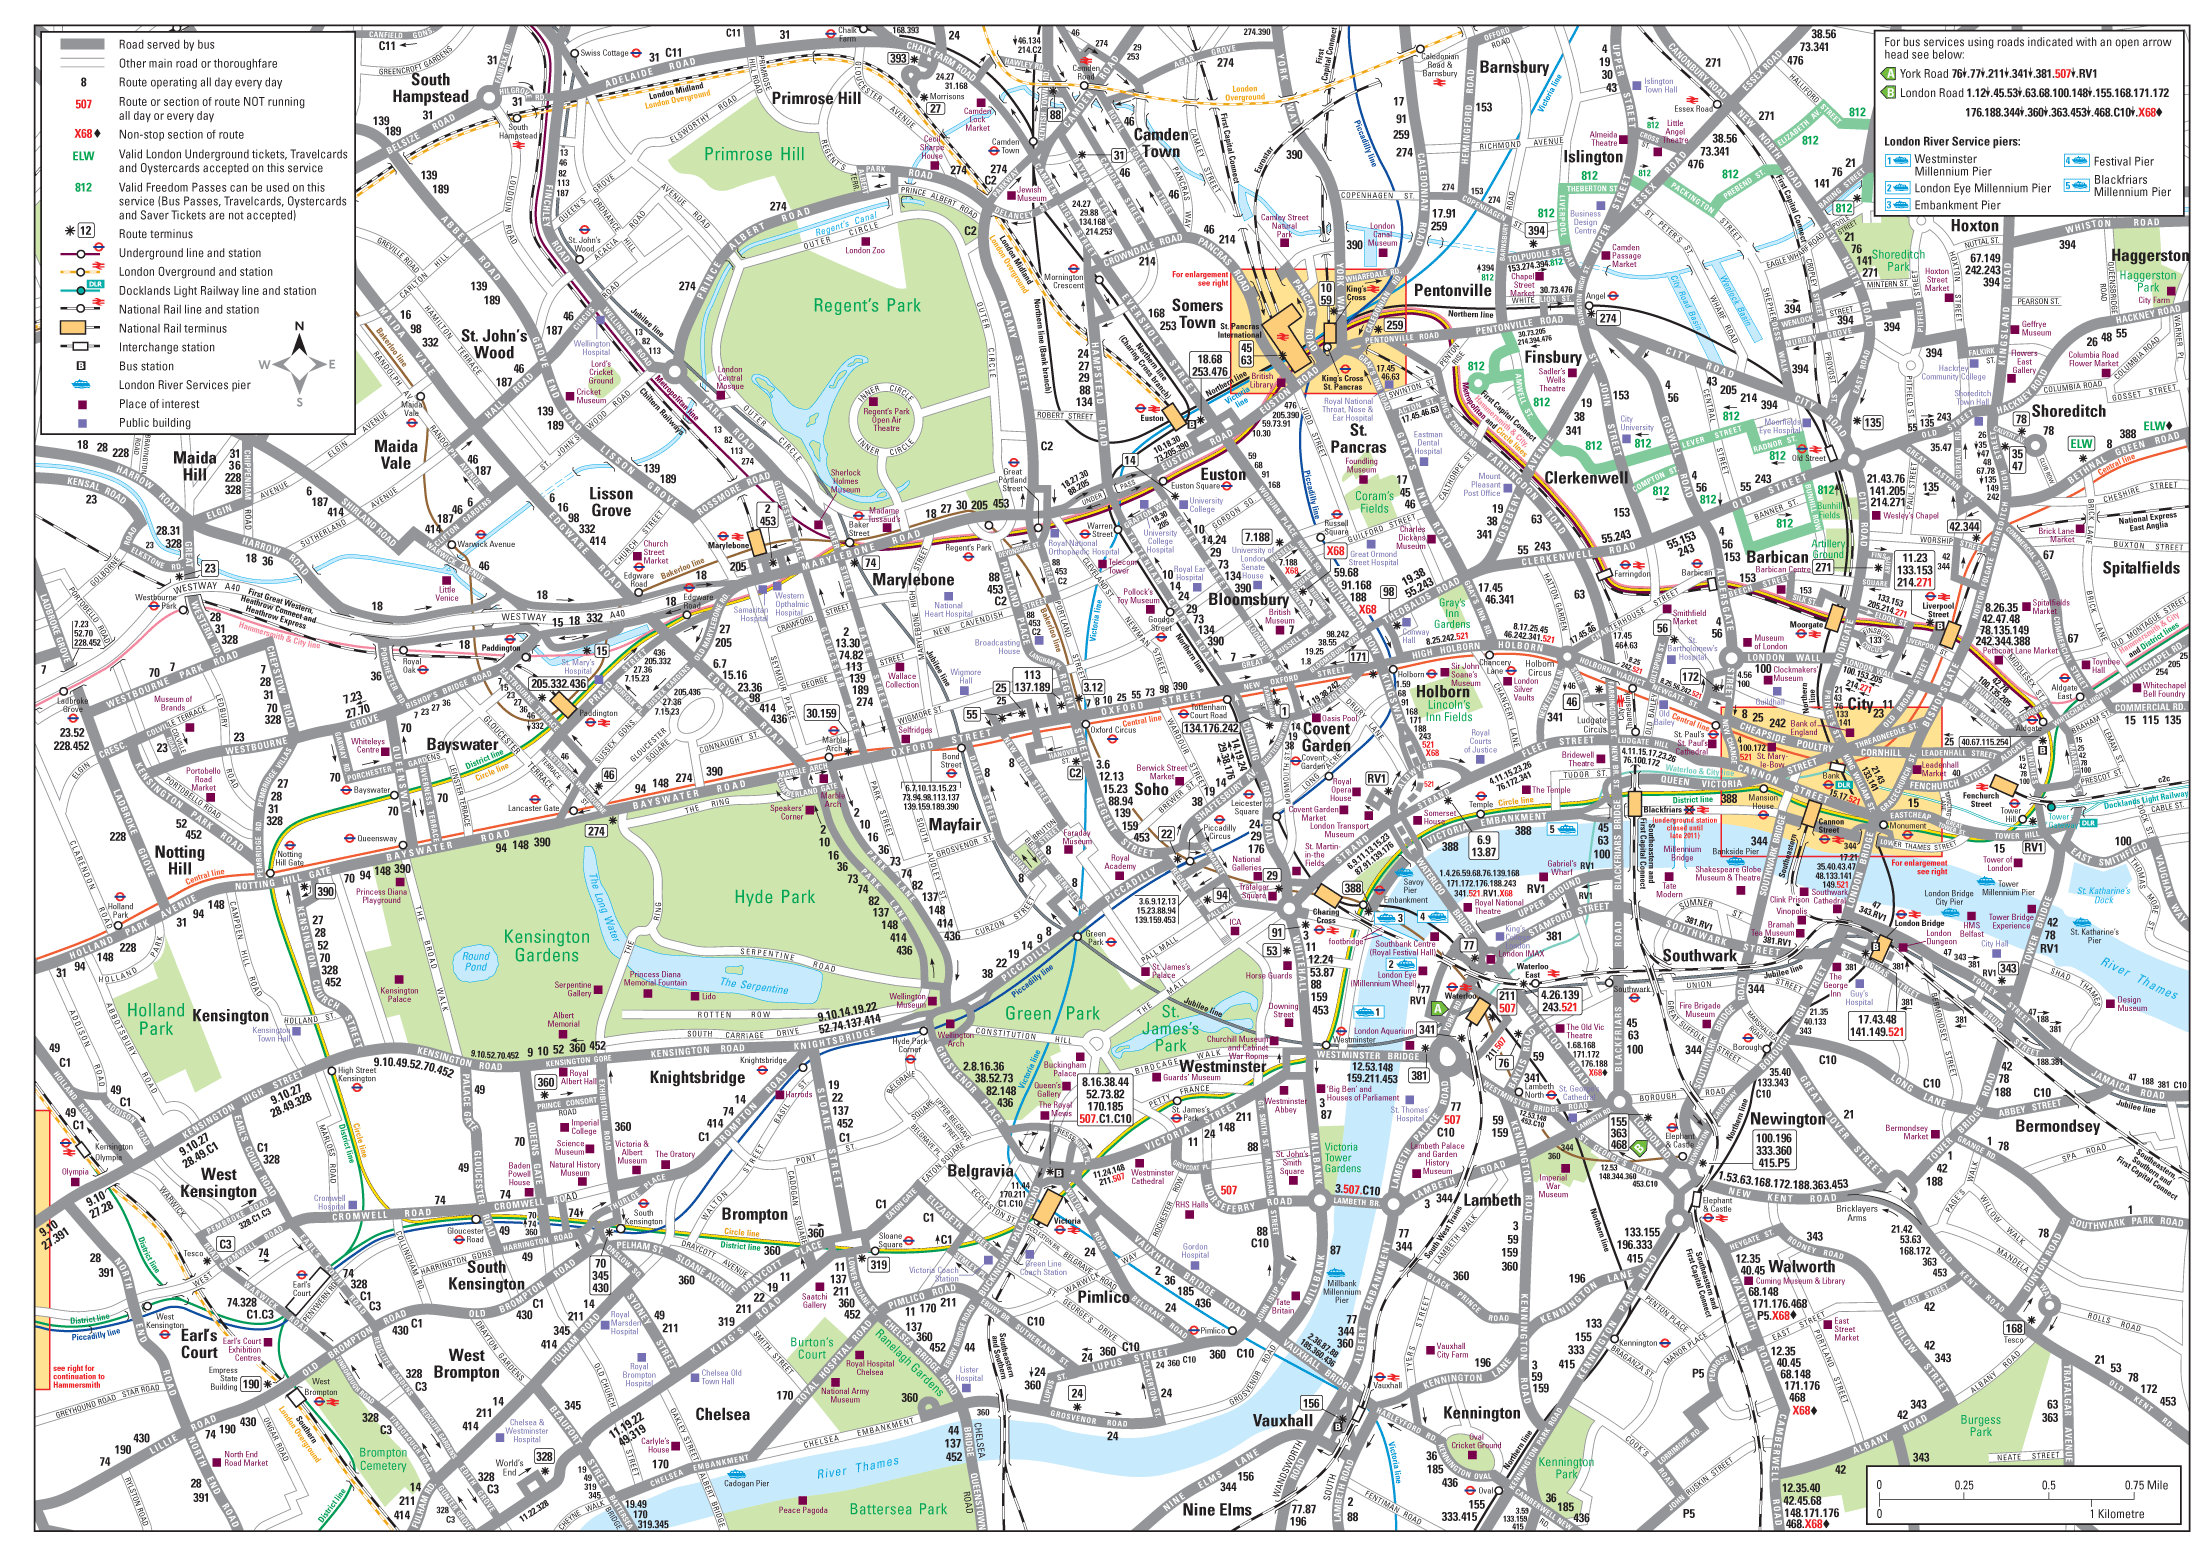 London City Bus Map.London Detailed Road Map New Zone London Map Bus Map London